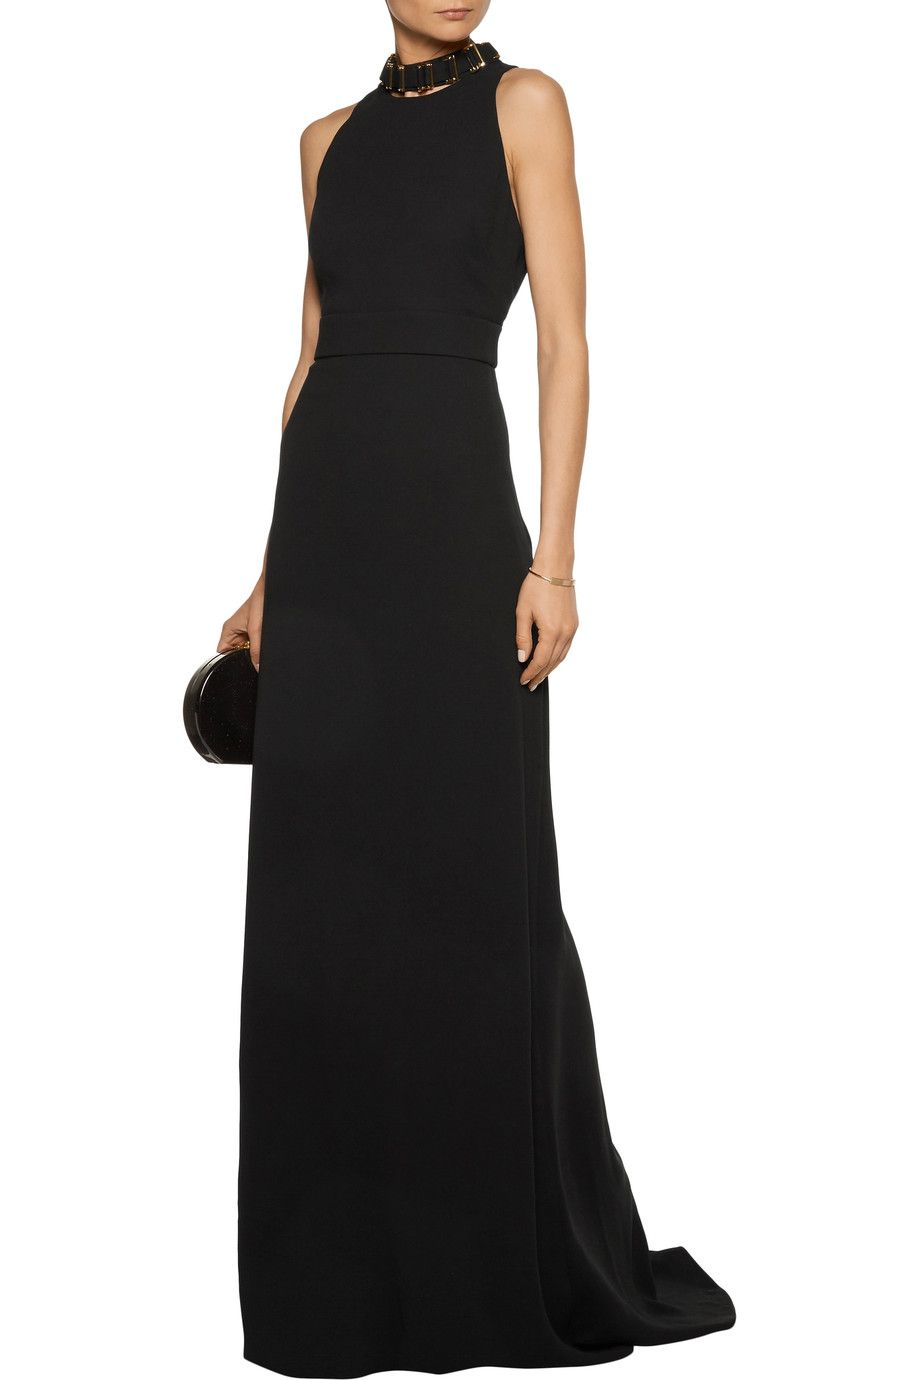 A model wearing a formal black gown